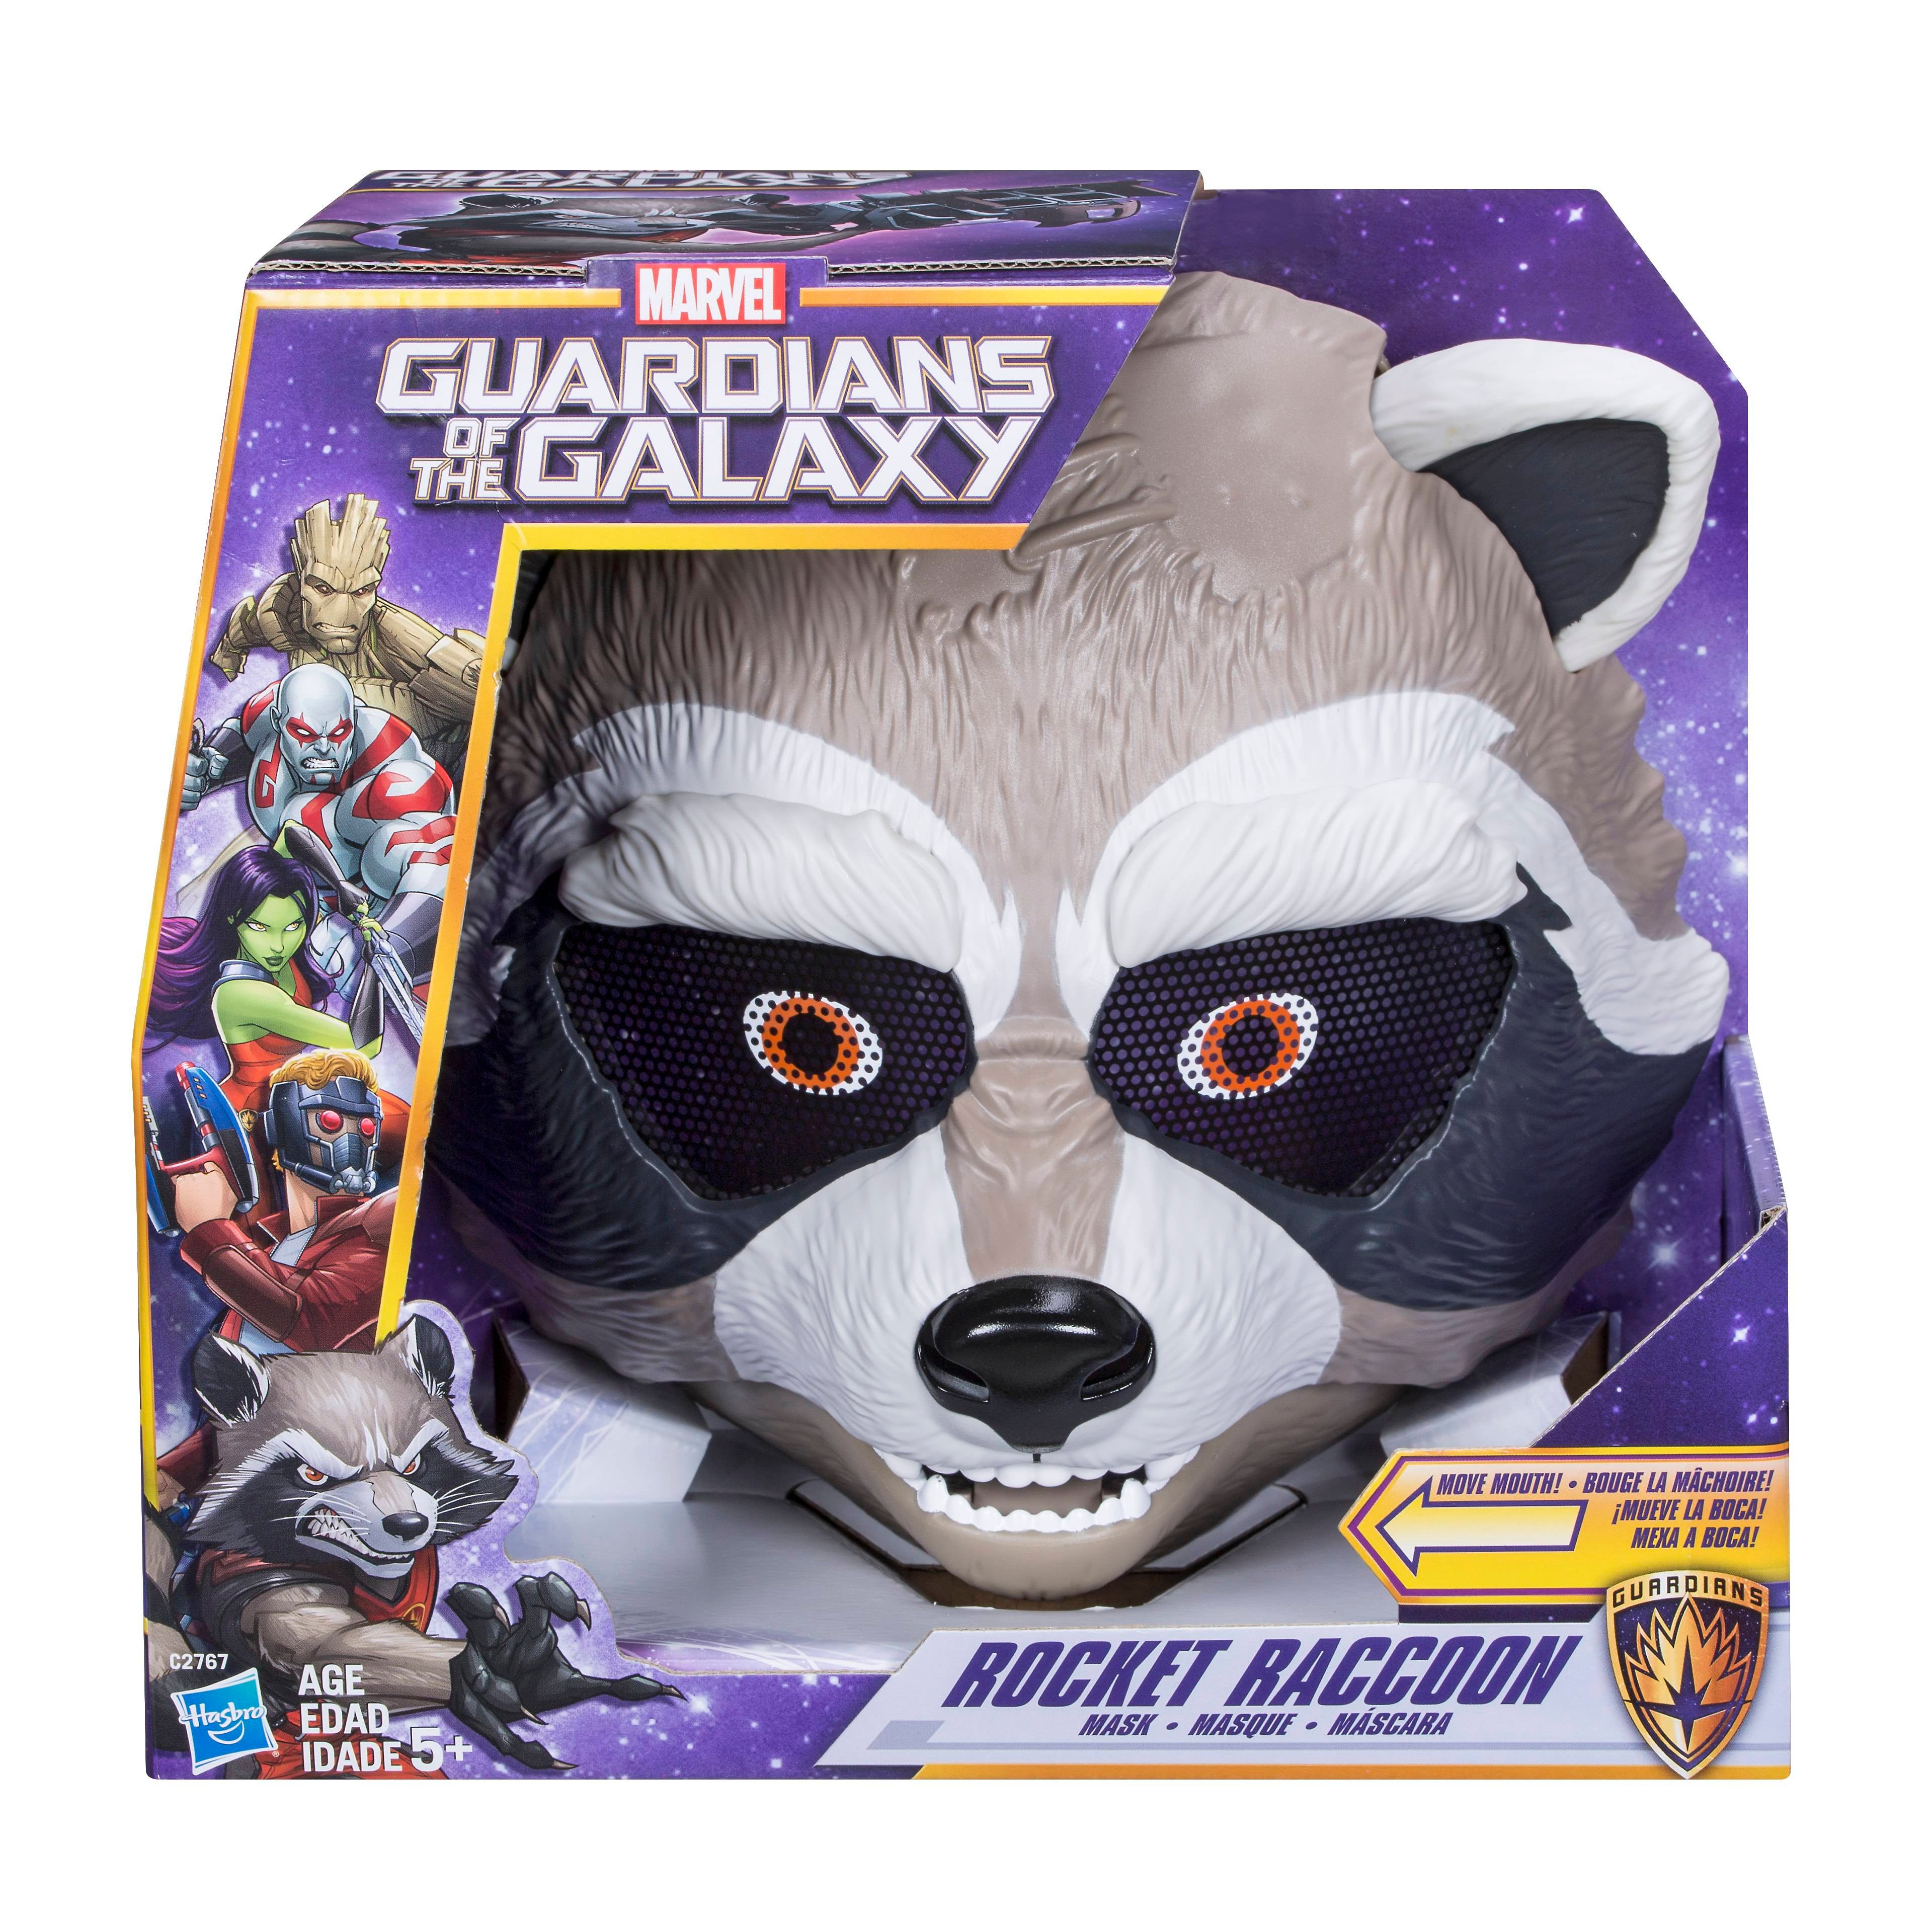 MARVEL GUARDIANS OF THE GALAXY ROCKET RACCOON ACTION MASK - in pkg